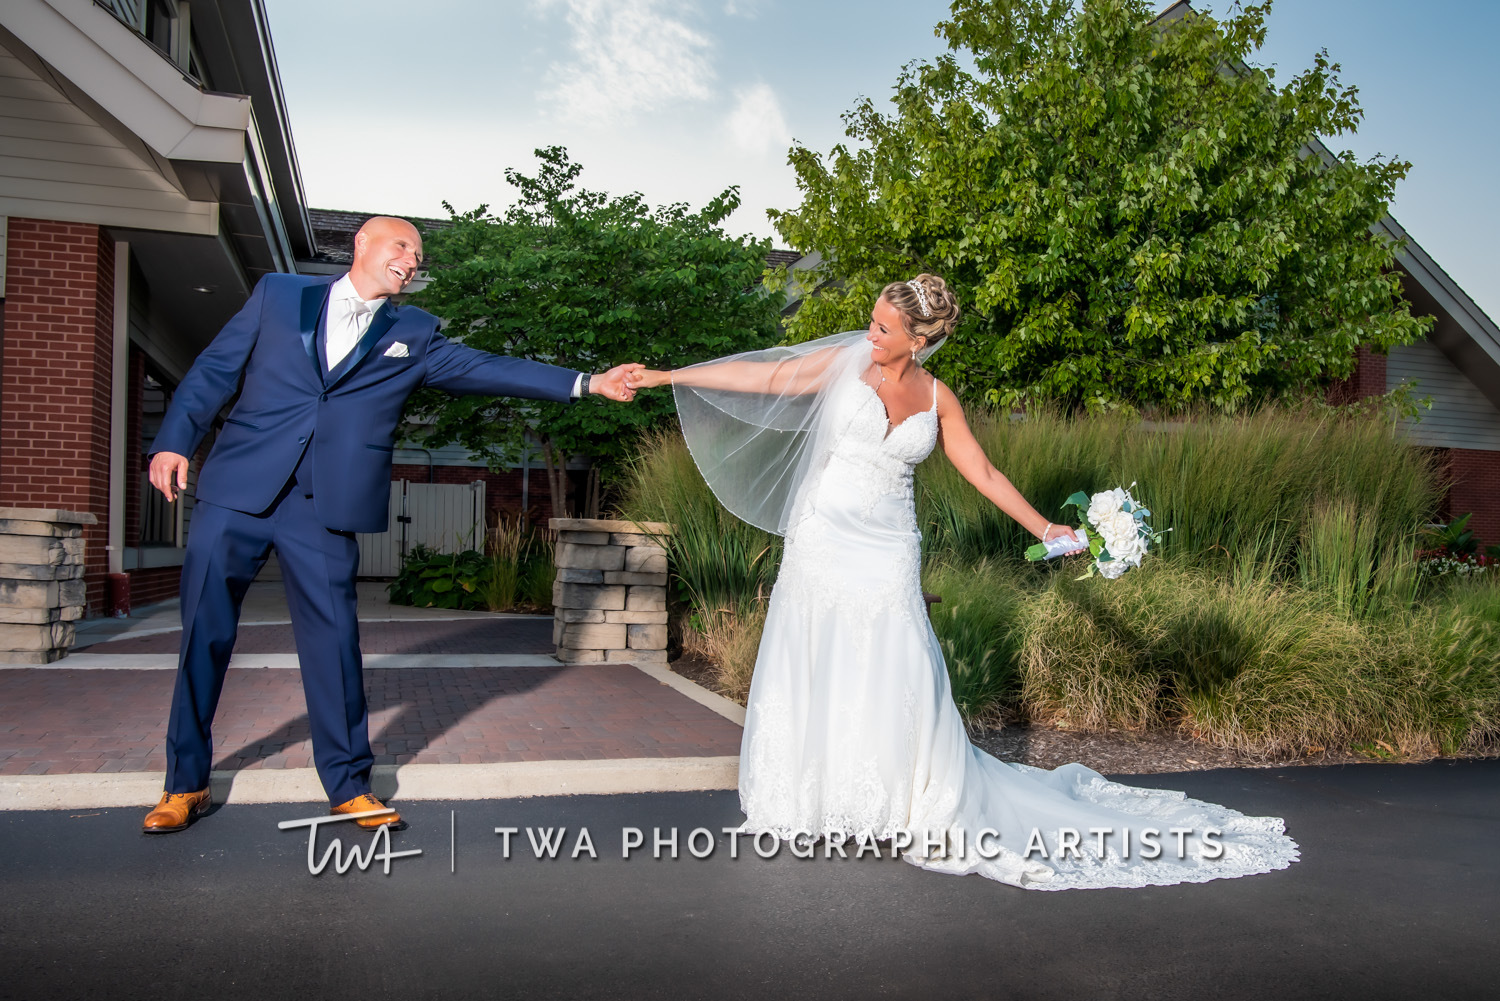 Chicago-Wedding-Photographer-TWA-Photographic-Artists-Reserve-22_Dufort_Gorski_NC-0523